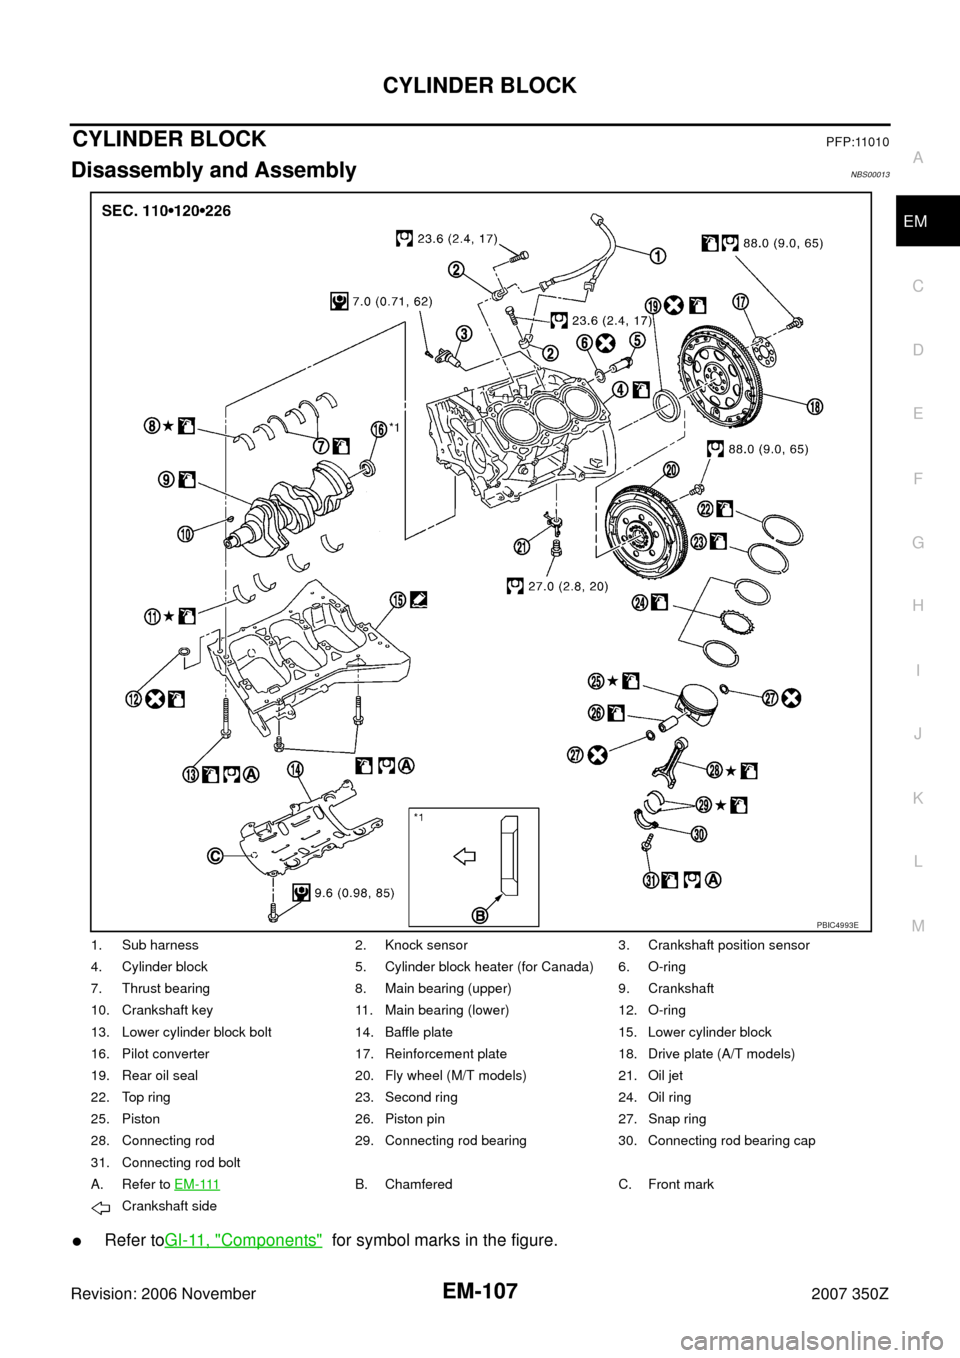 Pilot Bushing Nissan 350z Engine Diagrams Electrical Wiring Diagram 2007 Z33 Mechanical Workshop Manual 2005 Altima